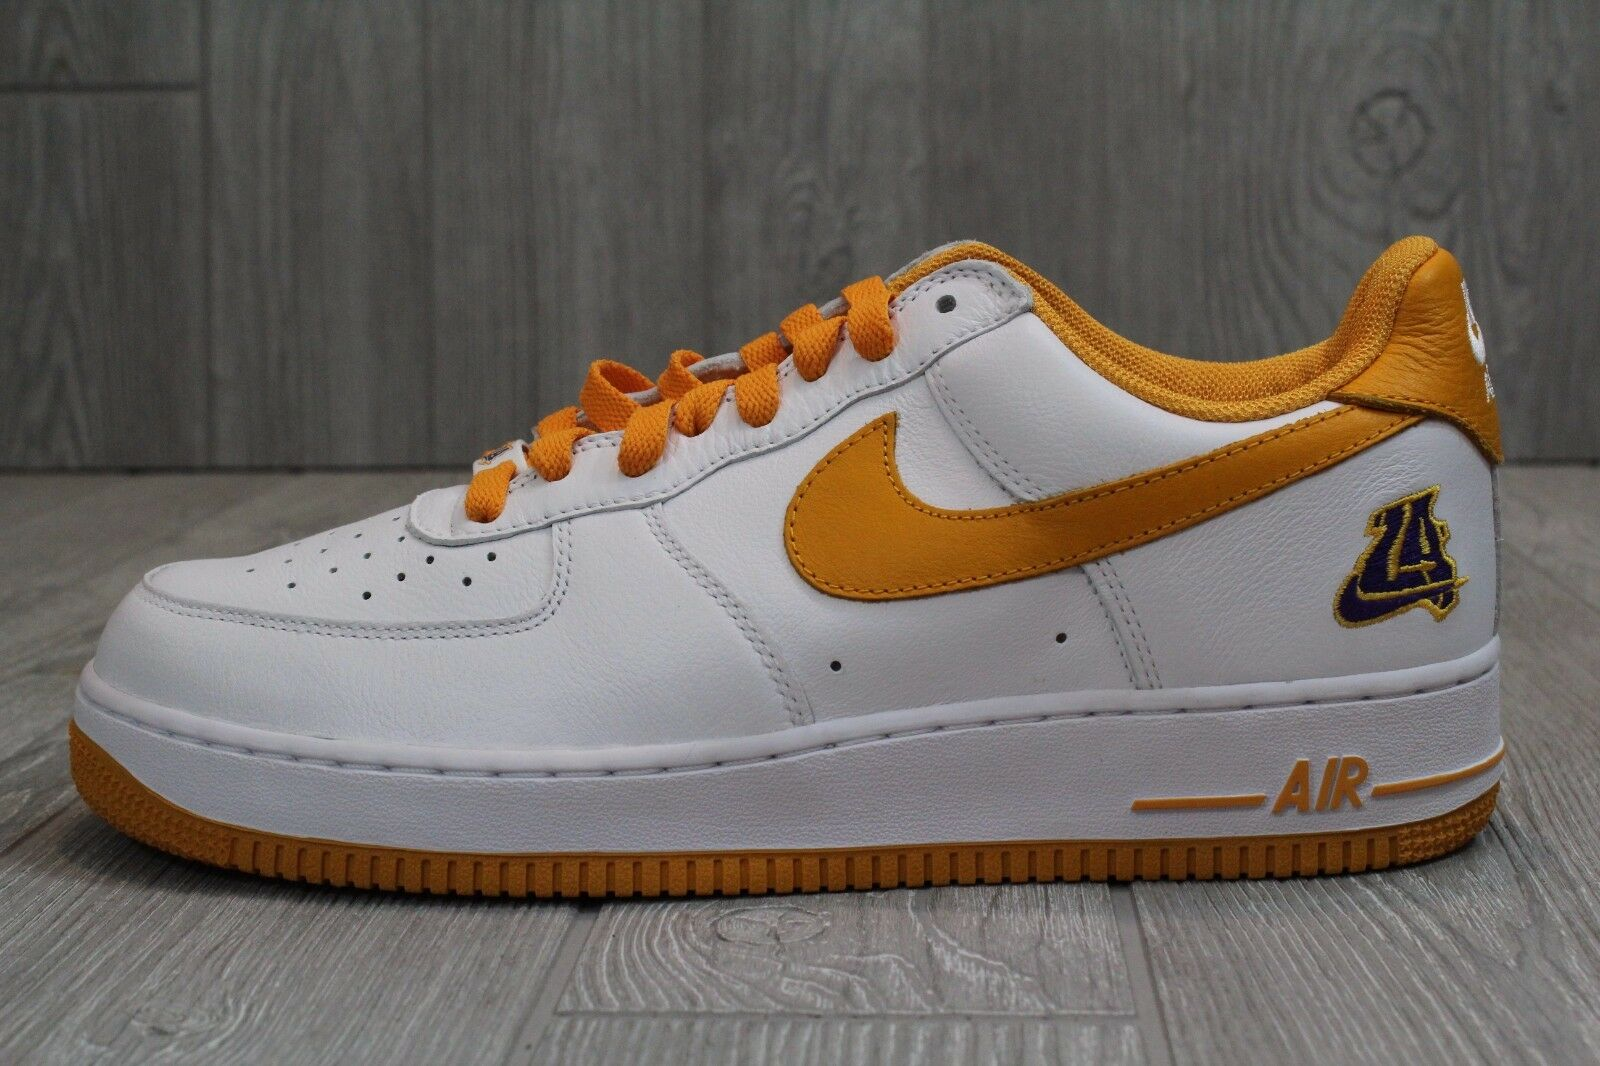 promo code 9f8a3 acd52 купить nike force shoes elemental, с доставкой 22 Mens Nike Air Force 1  Undefeated X